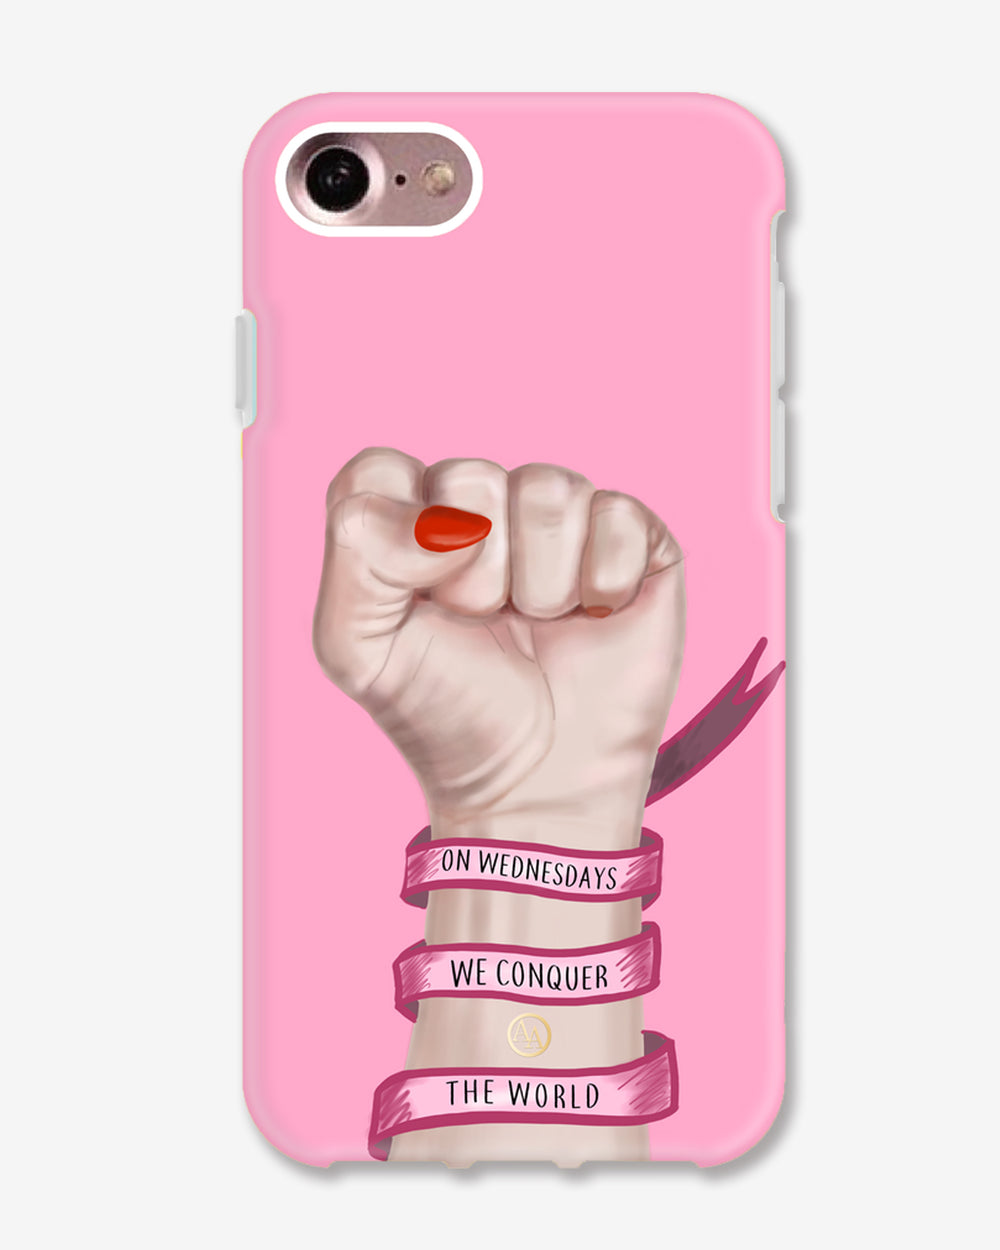 On Wednesdays We Conquer the World (Shockproof Phone Case)